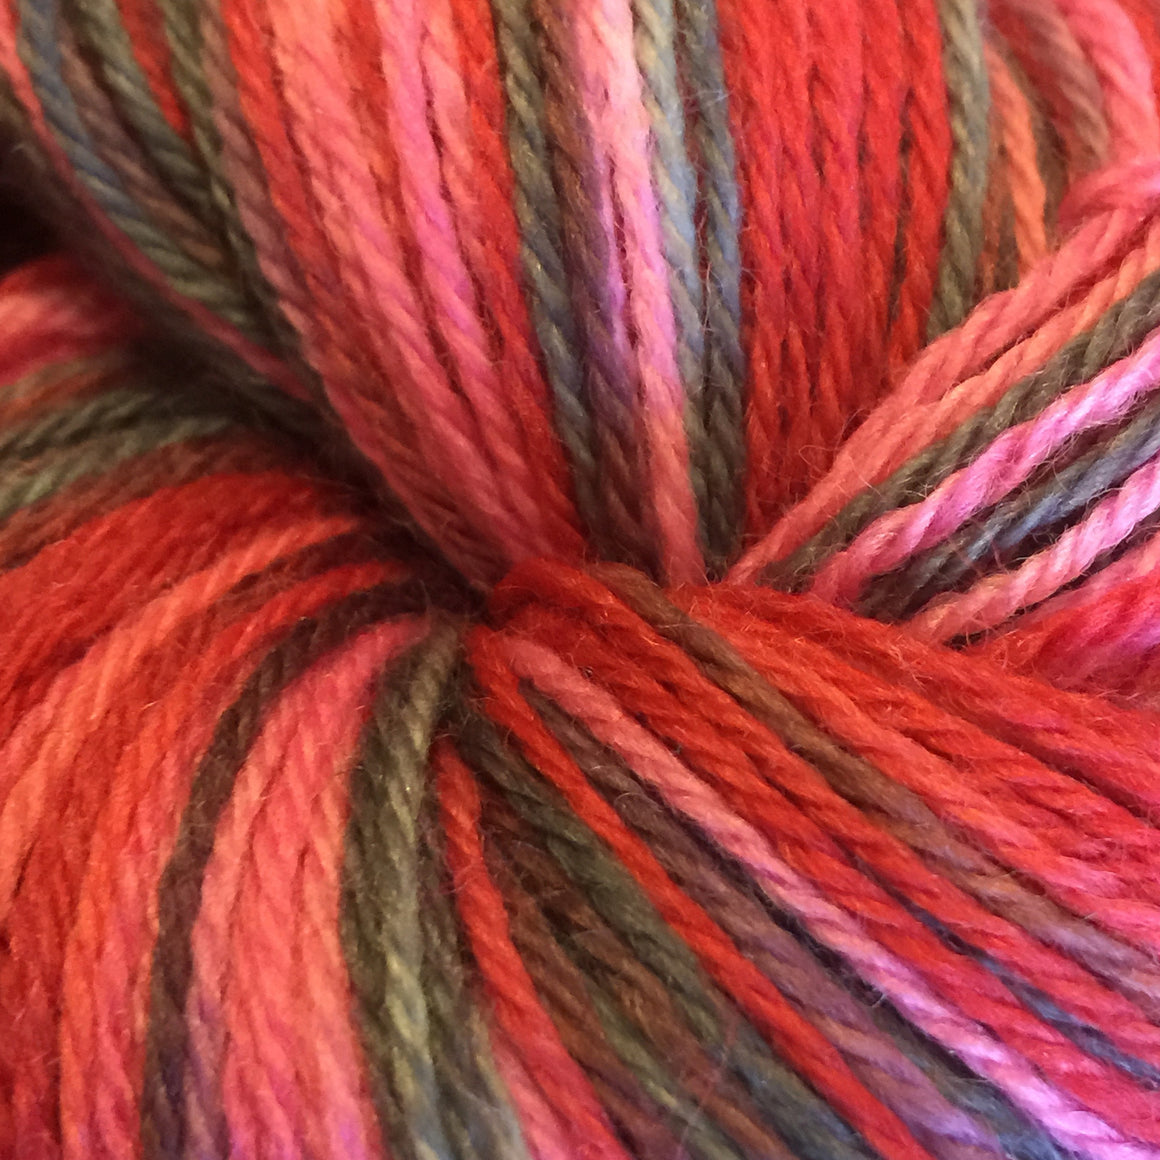 """The Devil Wears Prada"" with red and black tones on a fingering weight super wash merino yarn"